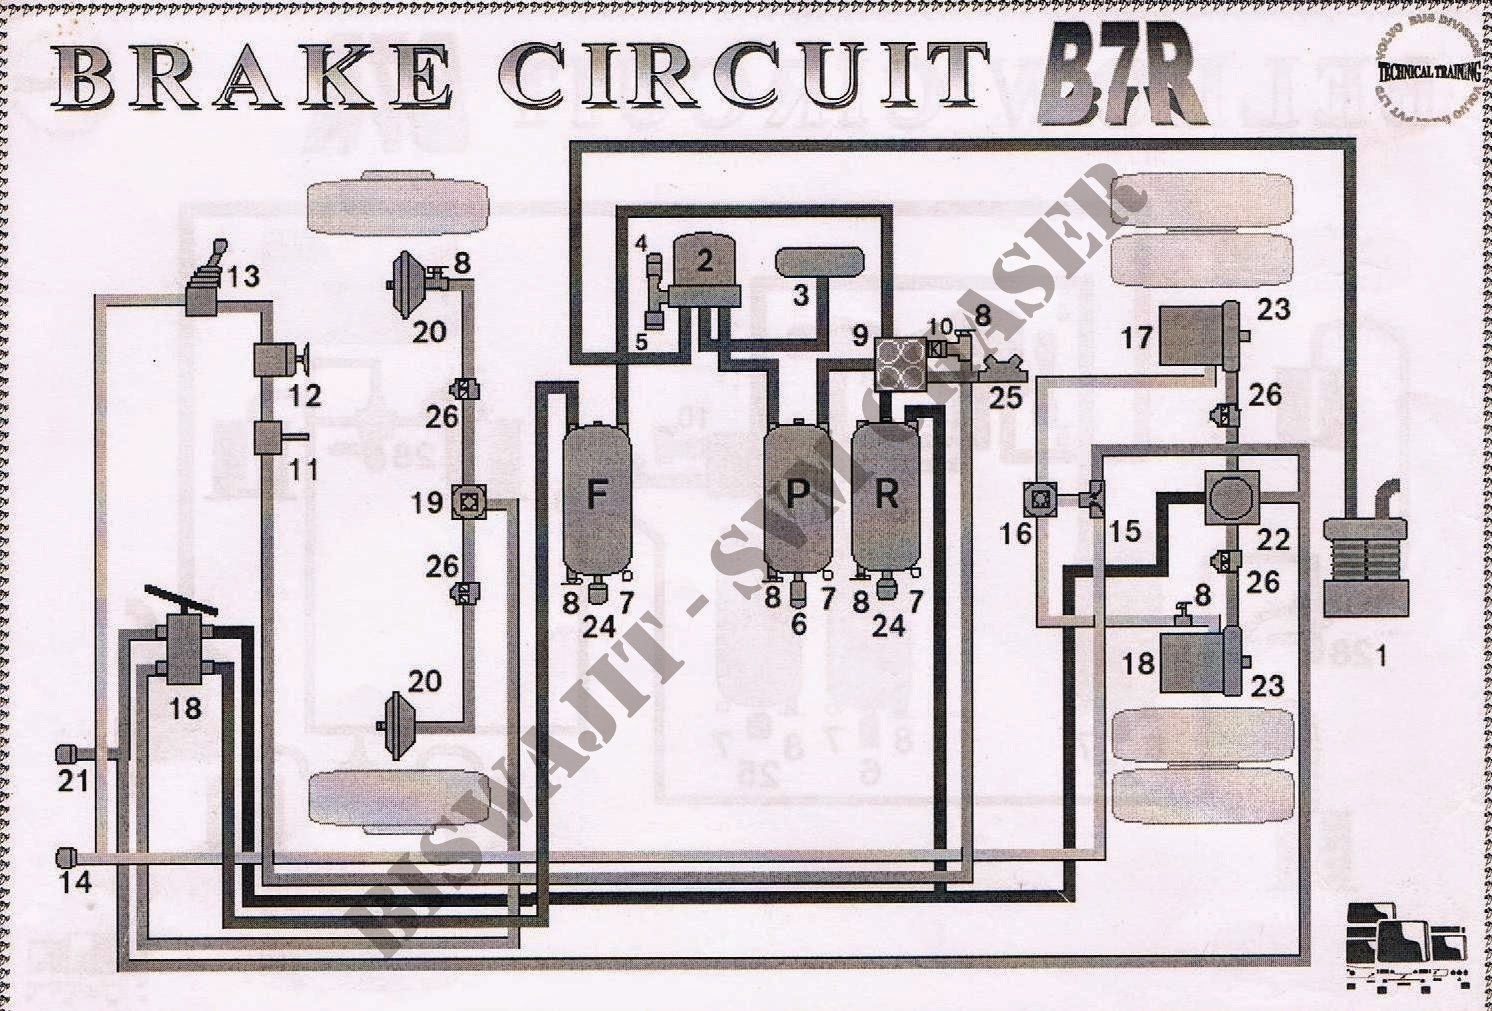 Luxury Volvo Truck Wiring Diagrams Embellishment - Best Images for on mack truck clutch, mack truck air conditioning, mack truck schematic, mack truck wiring harness, mack truck engine, mack truck manual transmission, mack truck specifications, mack truck body, mack truck front end assembly, mack truck electrical relay, mack truck suspension diagram, mack truck fuse diagram, mack truck headlights, mack truck axle diagram, mack truck maintenance,